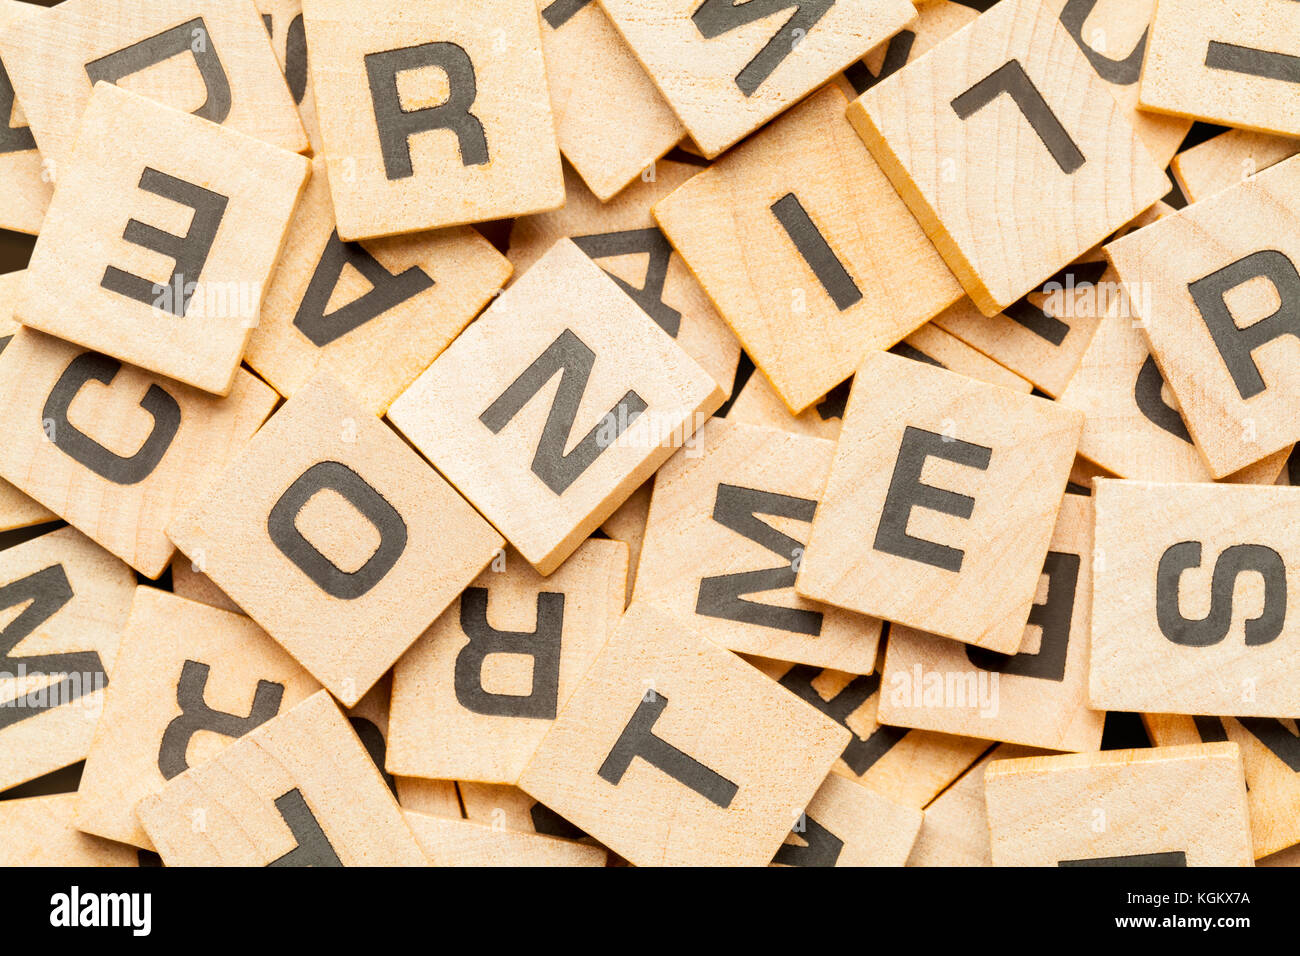 Pile of Wood Letter Game Tiles Background. Stock Photo